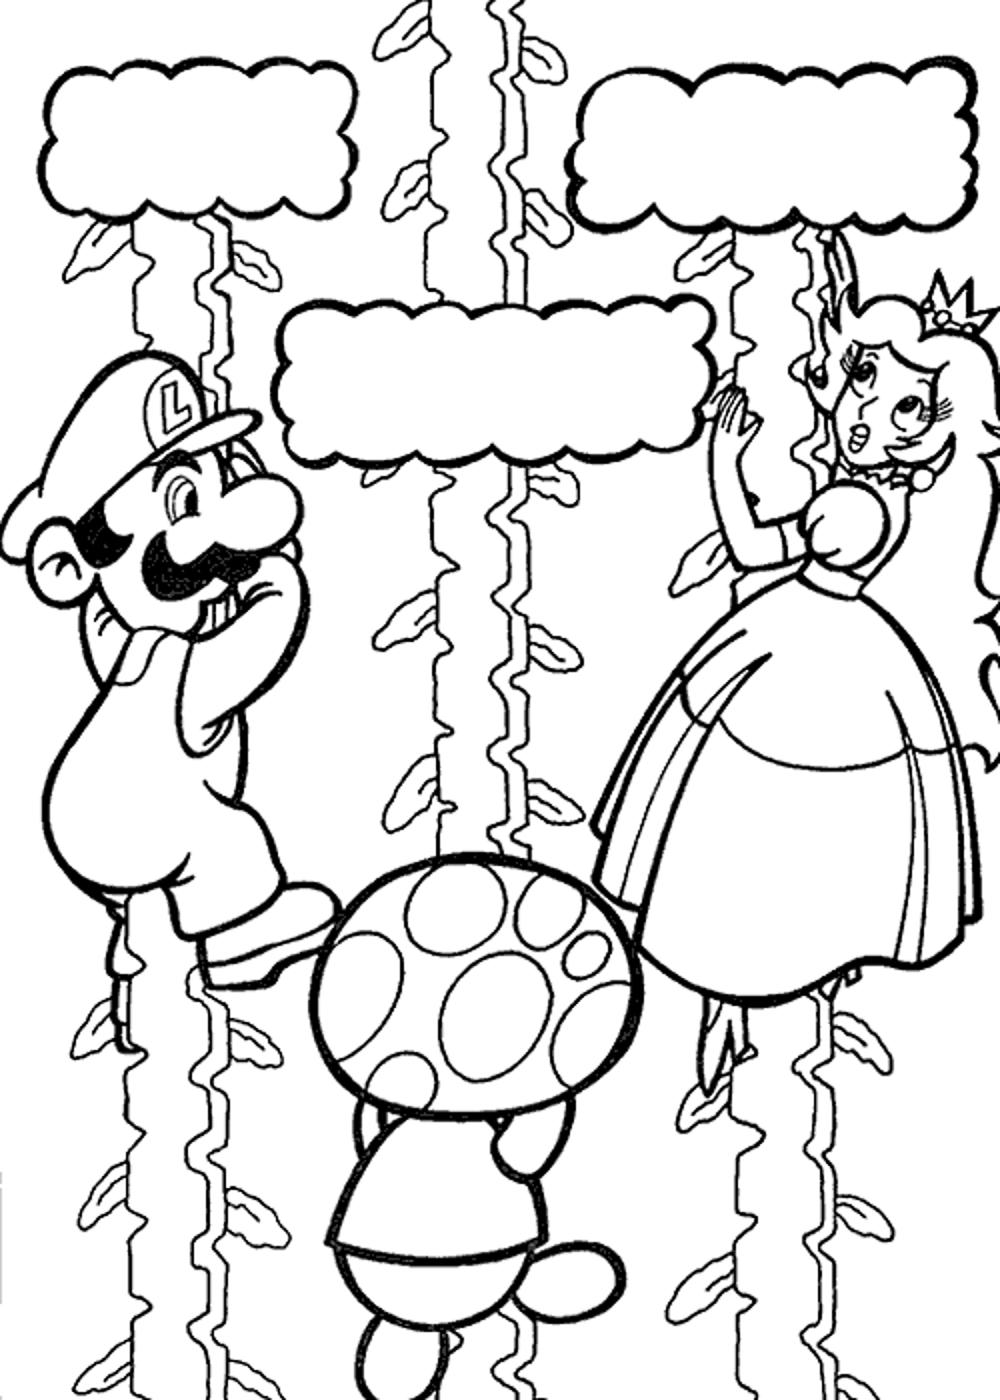 mario galaxy coloring pages best apps for